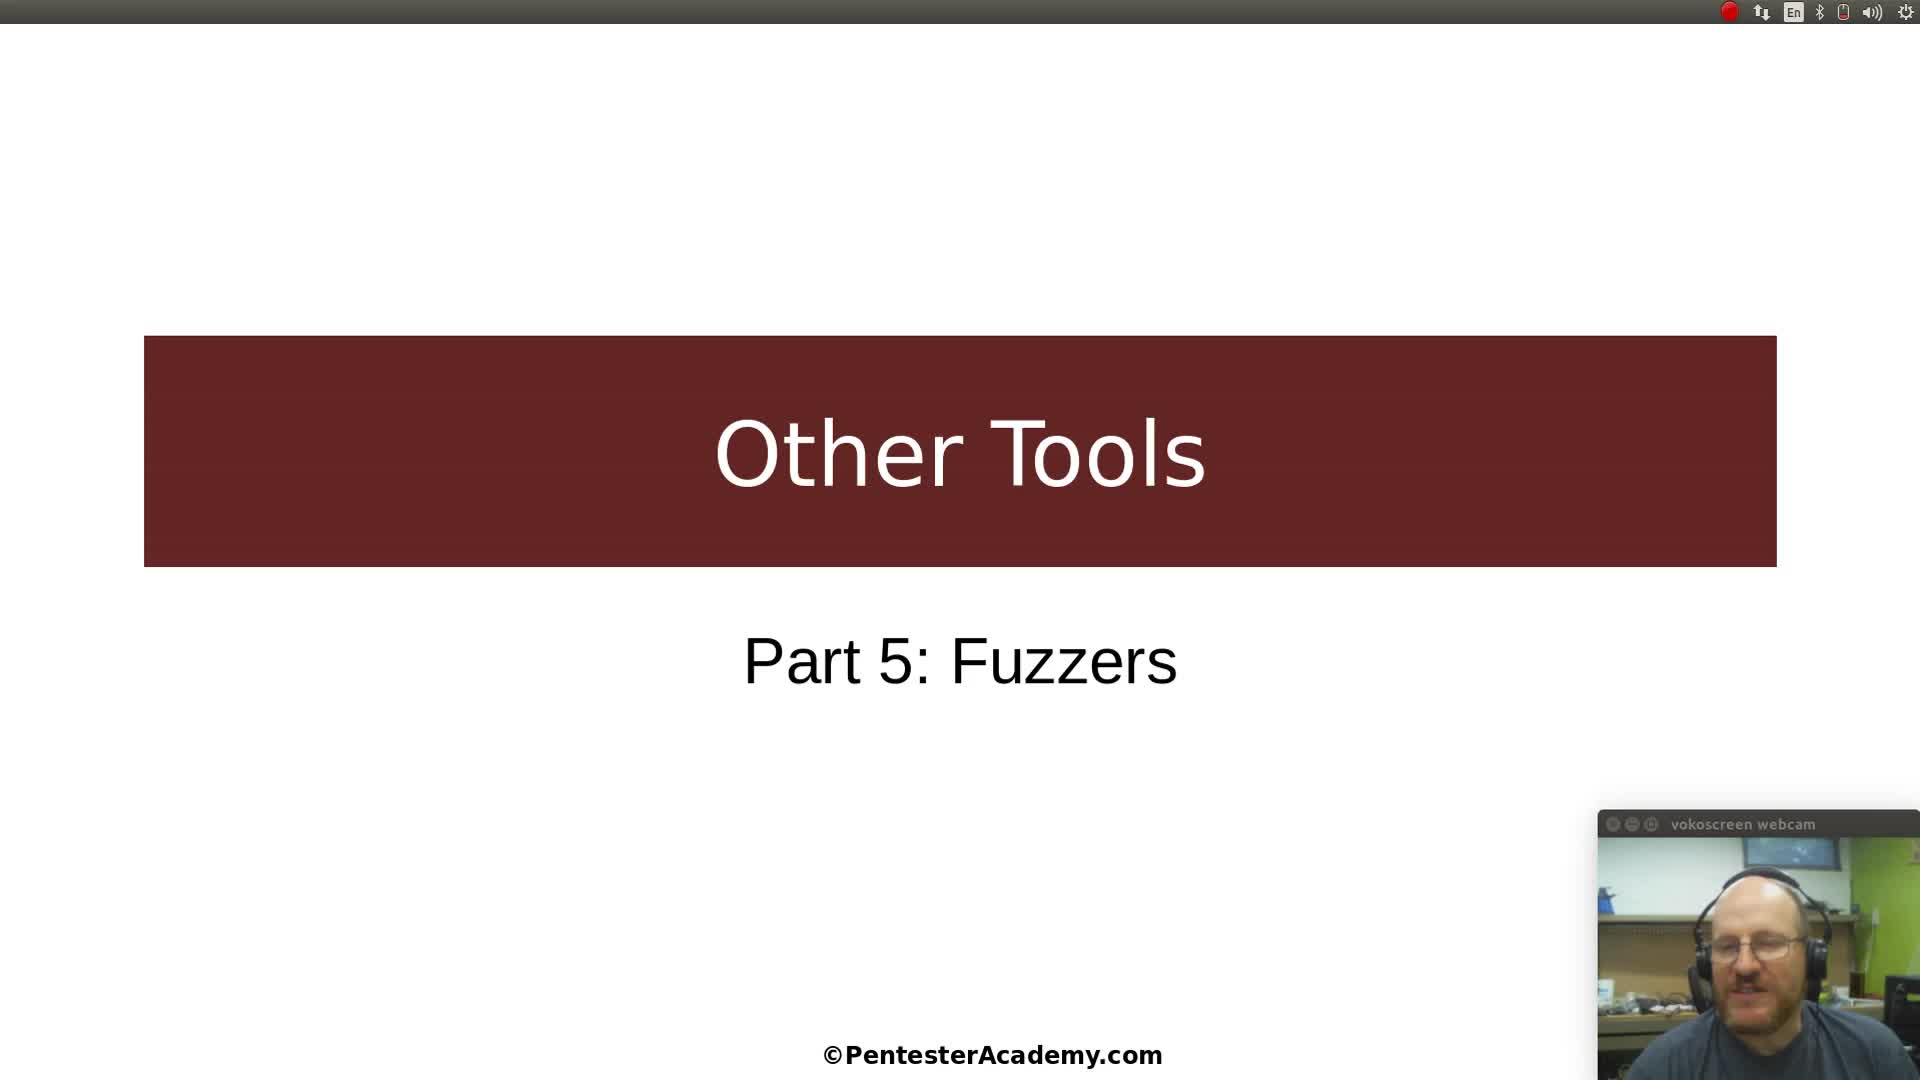 Other Tools Part 5: Fuzzers